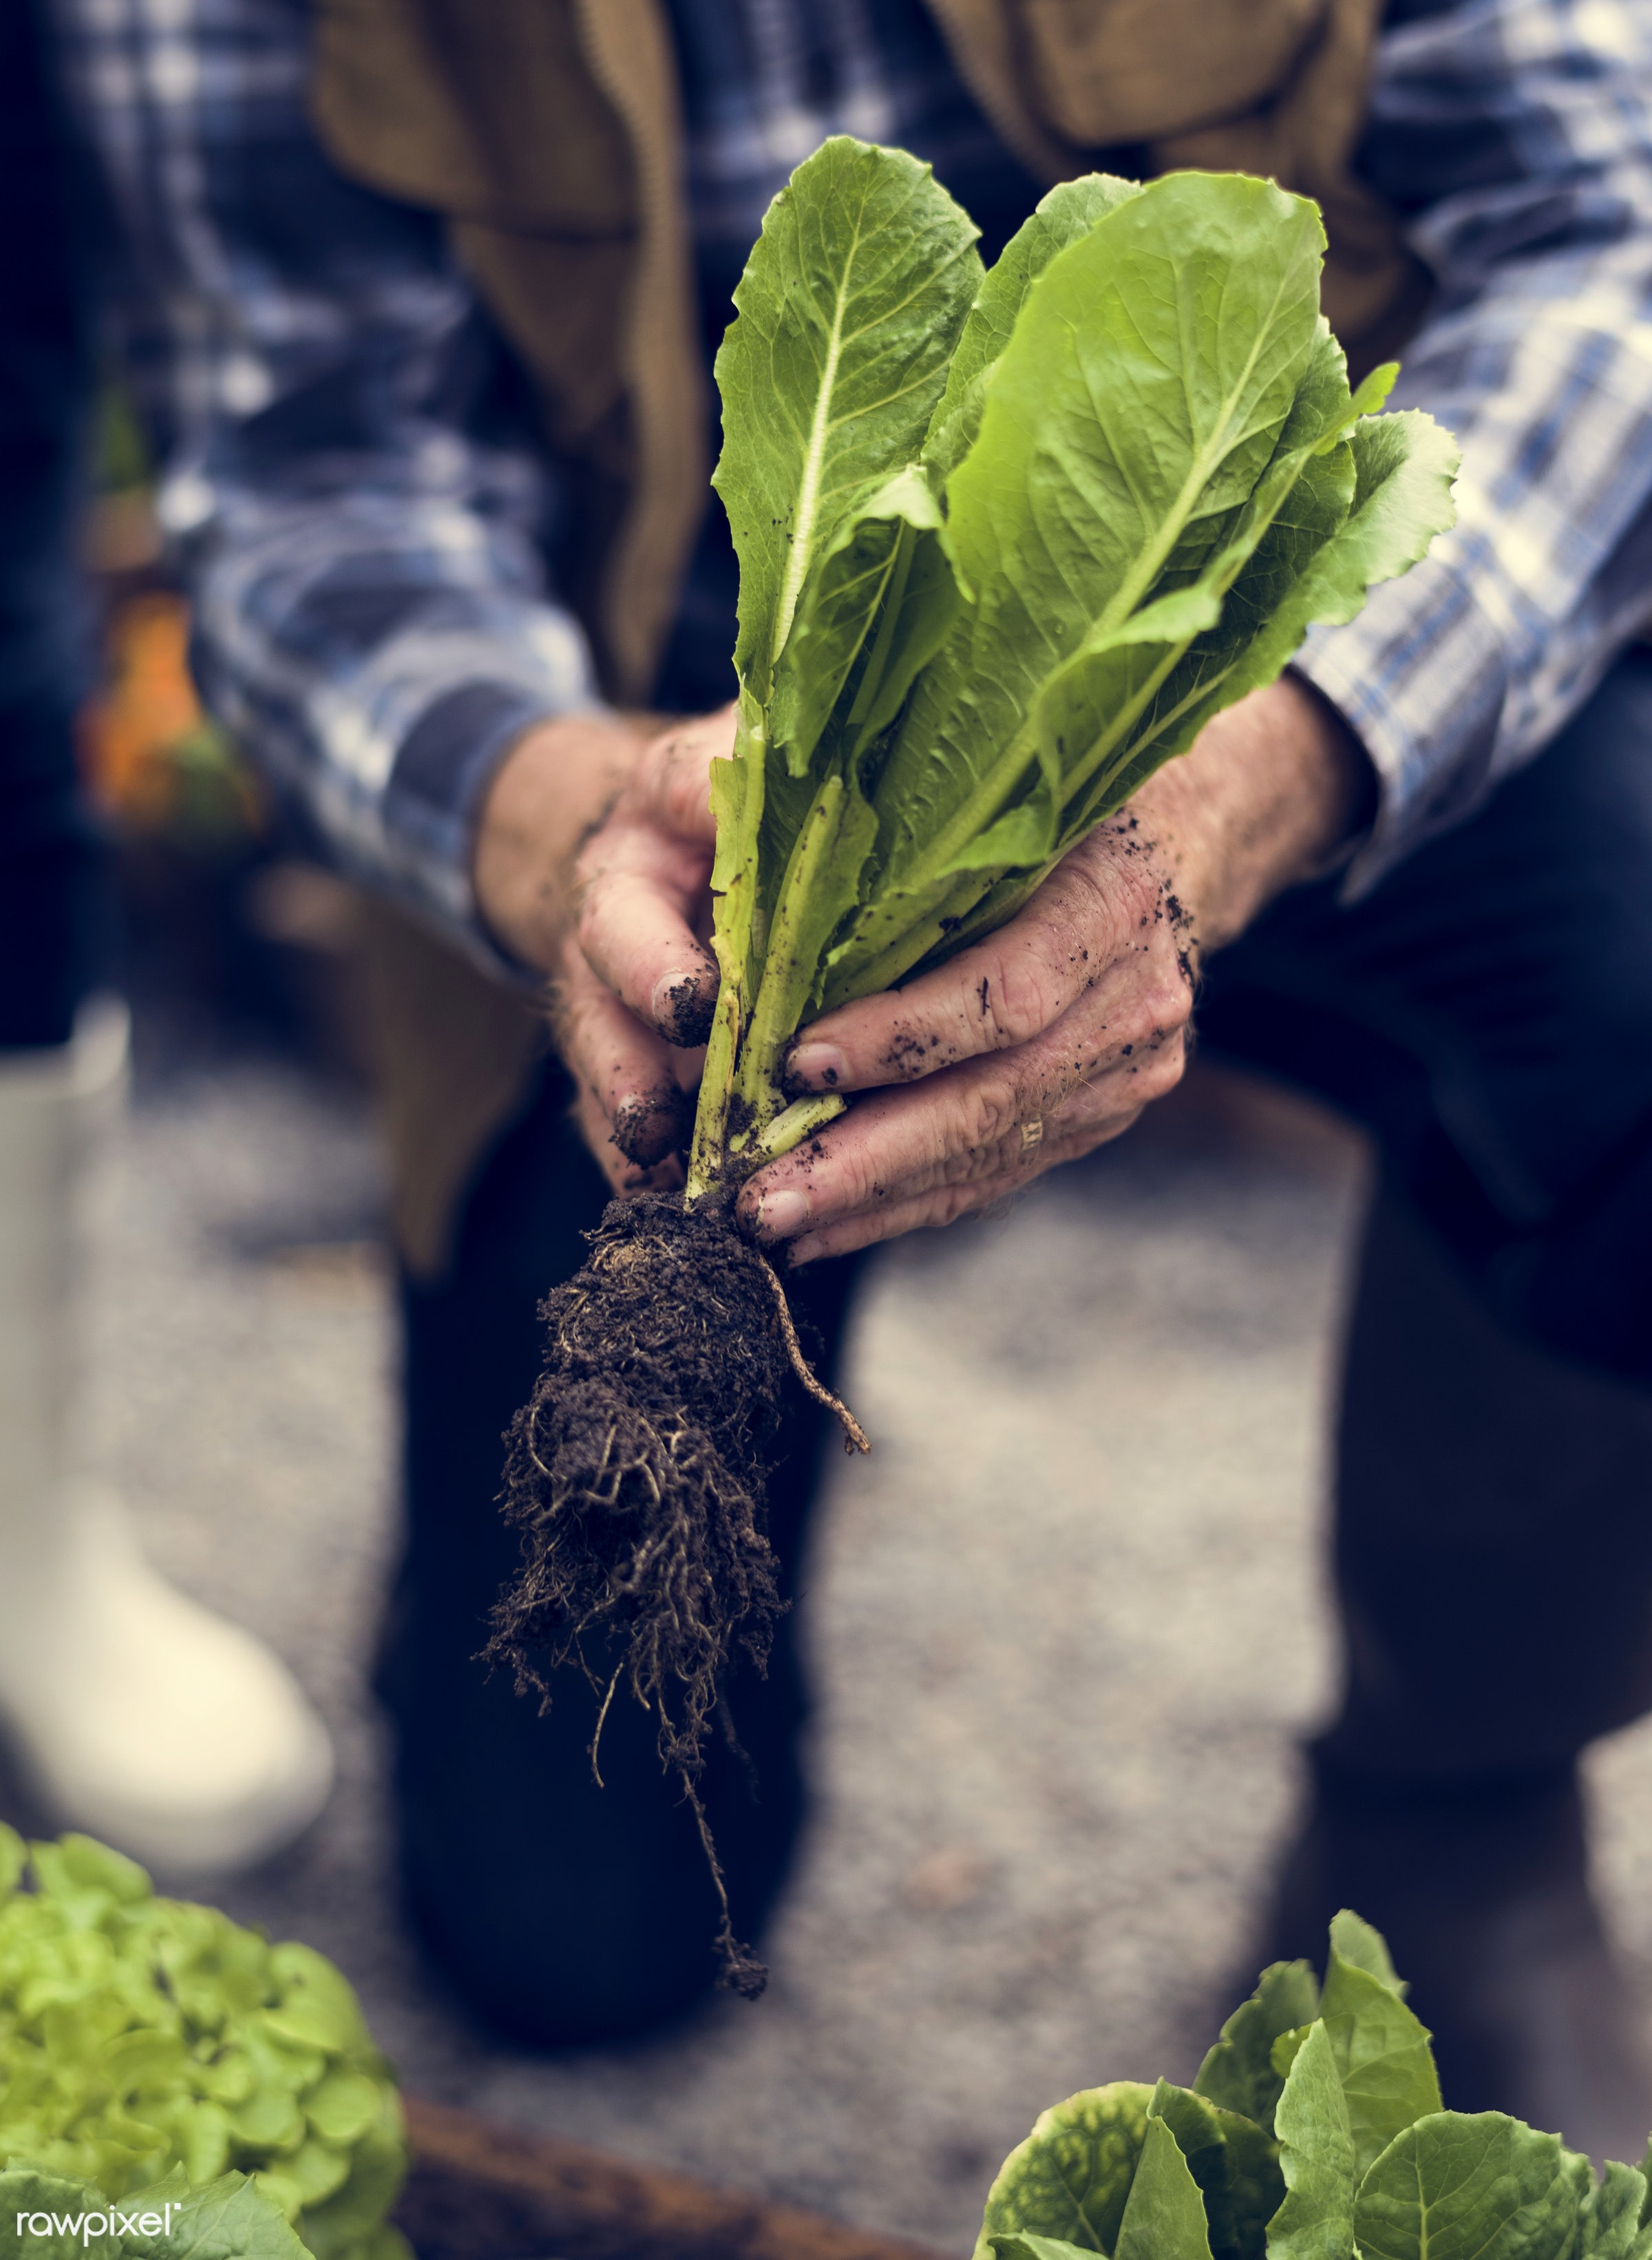 plant, nutritious, greenhouse, farmer, fresh, hands, lettuce, healthy eating, man, green, agriculture, planting, healthy...